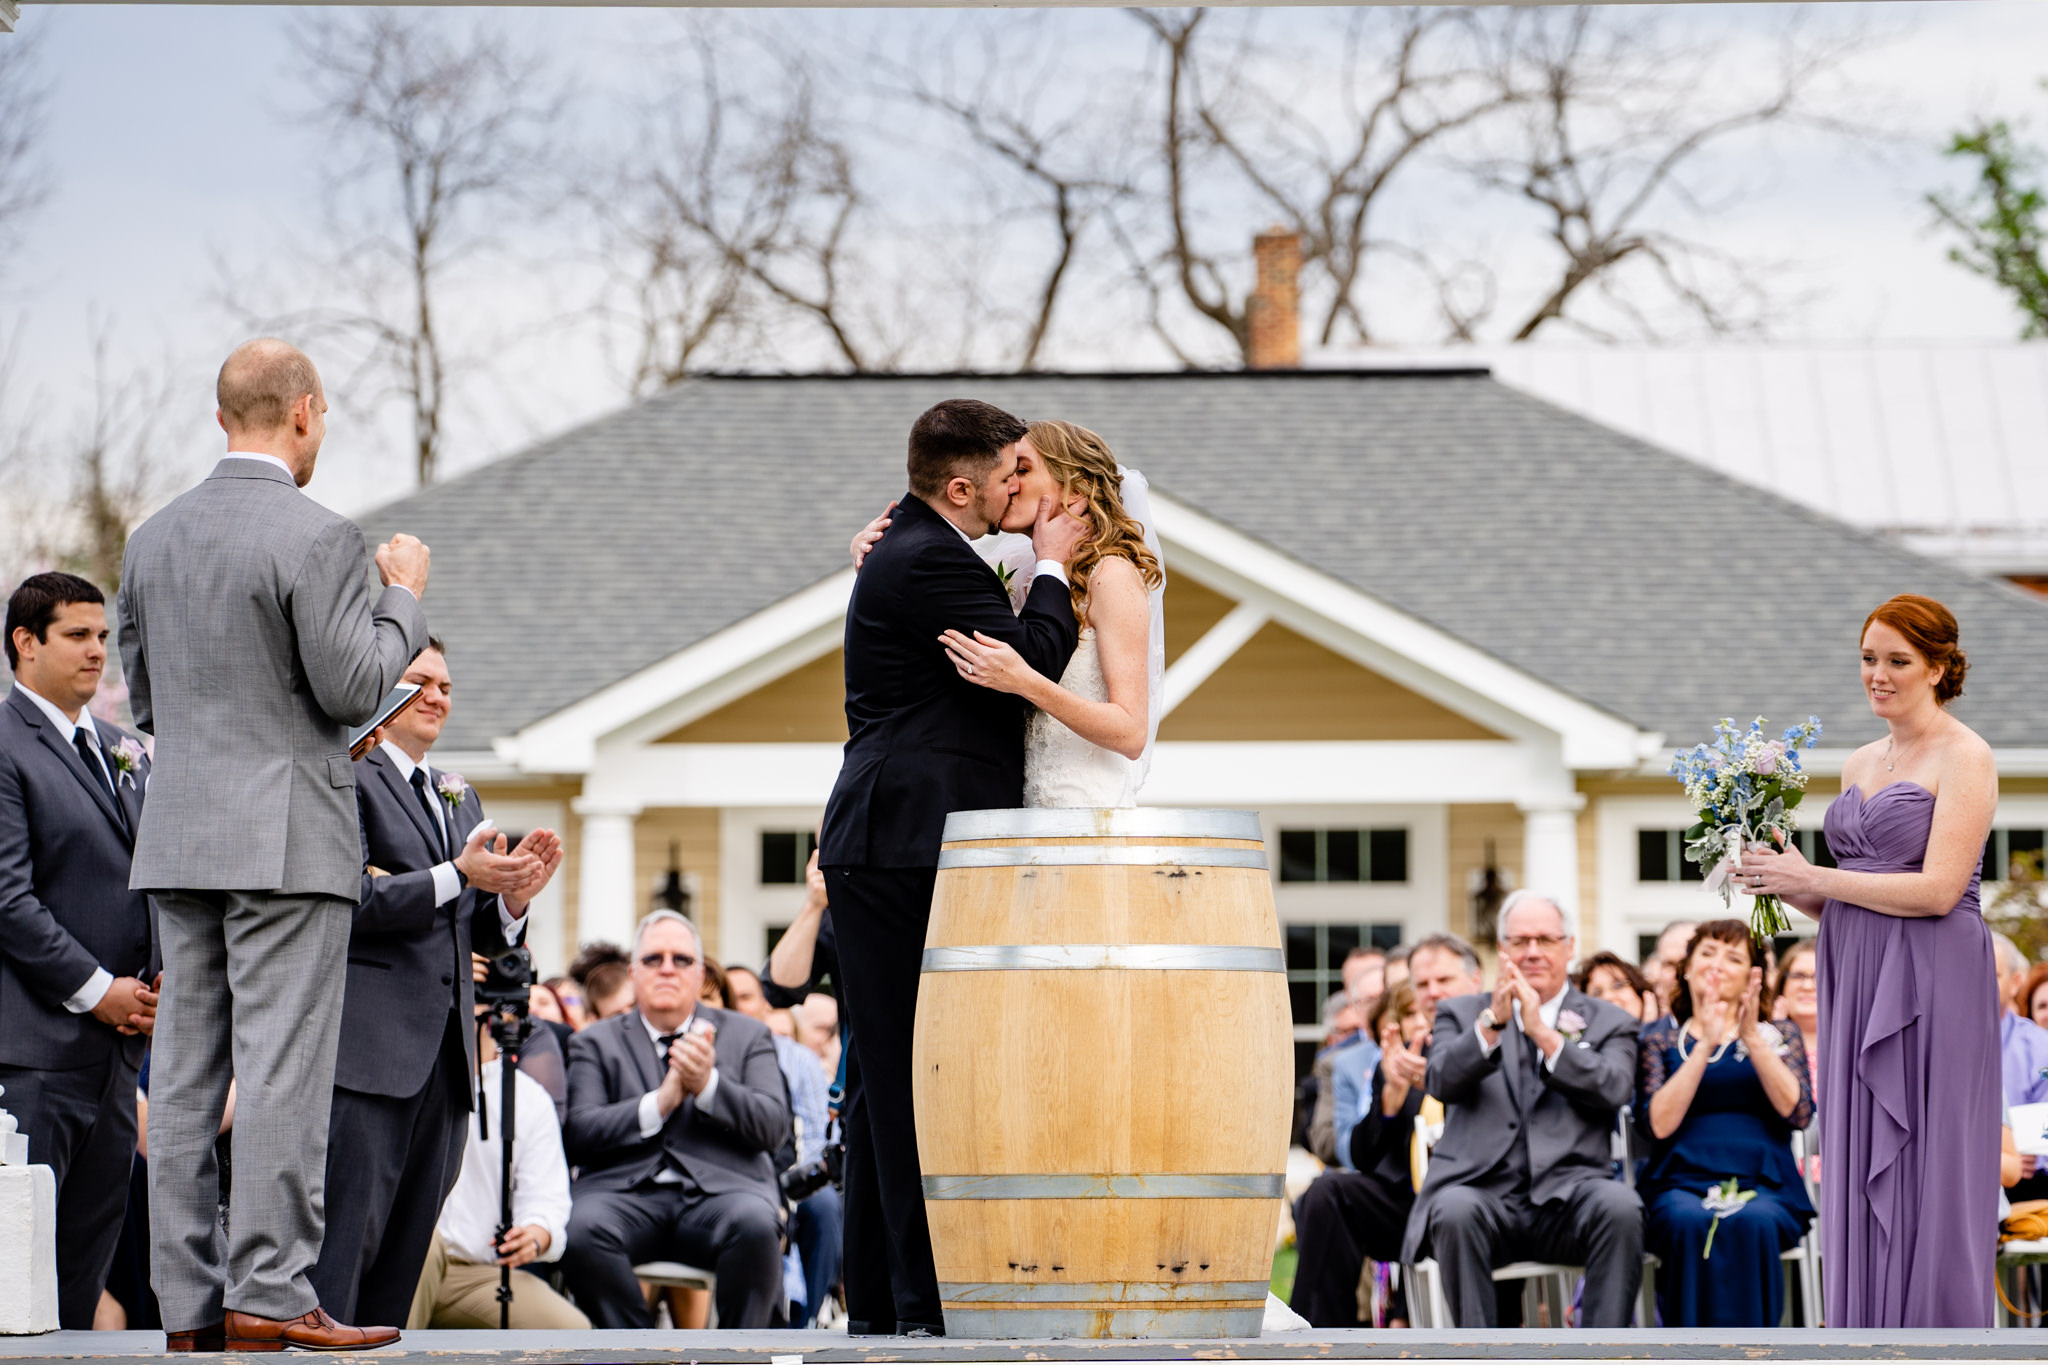 Springfield Manor Winery and Distillery Thornton MD Spring Wedding Photography by Bee Two Sweet-11.jpg